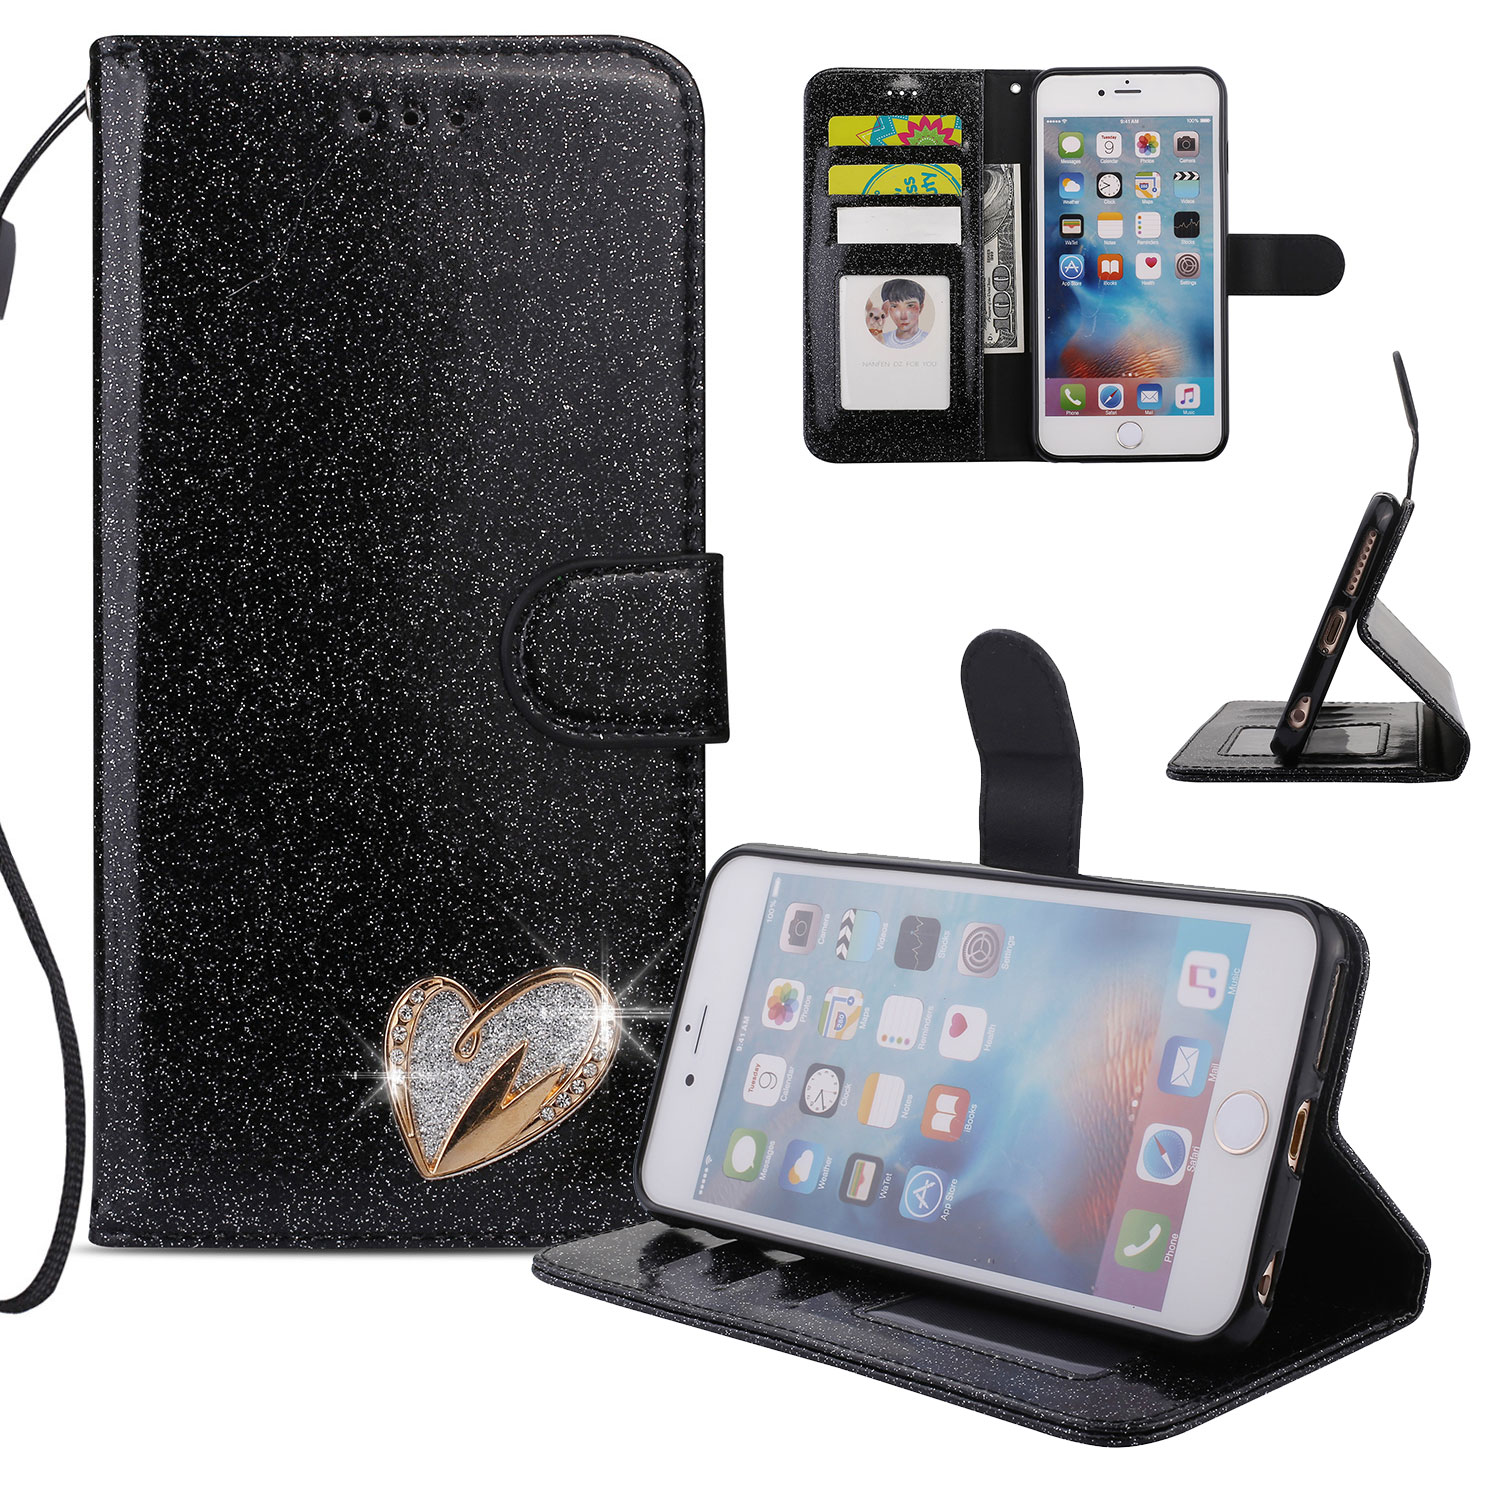 iPhone 6S Plus Case Wallet, iPhone 6 Plus Case, Allytech Glitter Folio Kickstand with Wristlet Lanyard Shiny Sparkle Luxury Bling Card Slots Slim Cover for Apple iPhone 6 Plus/ 6S Plus (Black)